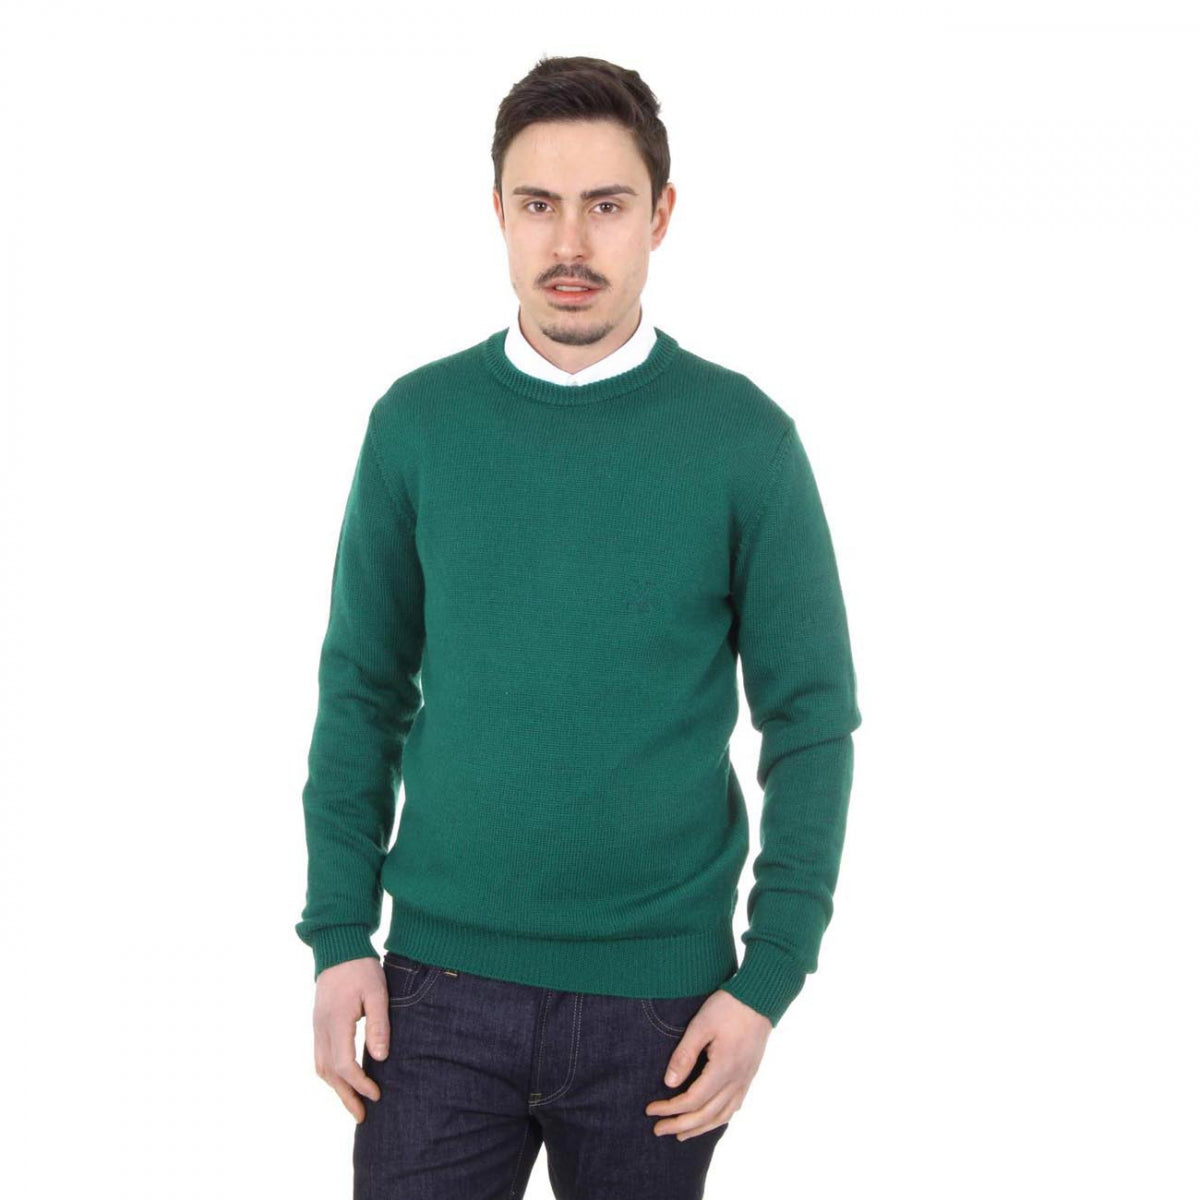 V 1969 Italia mens round neck sweater 9802 GIROCOLLO VERDONE